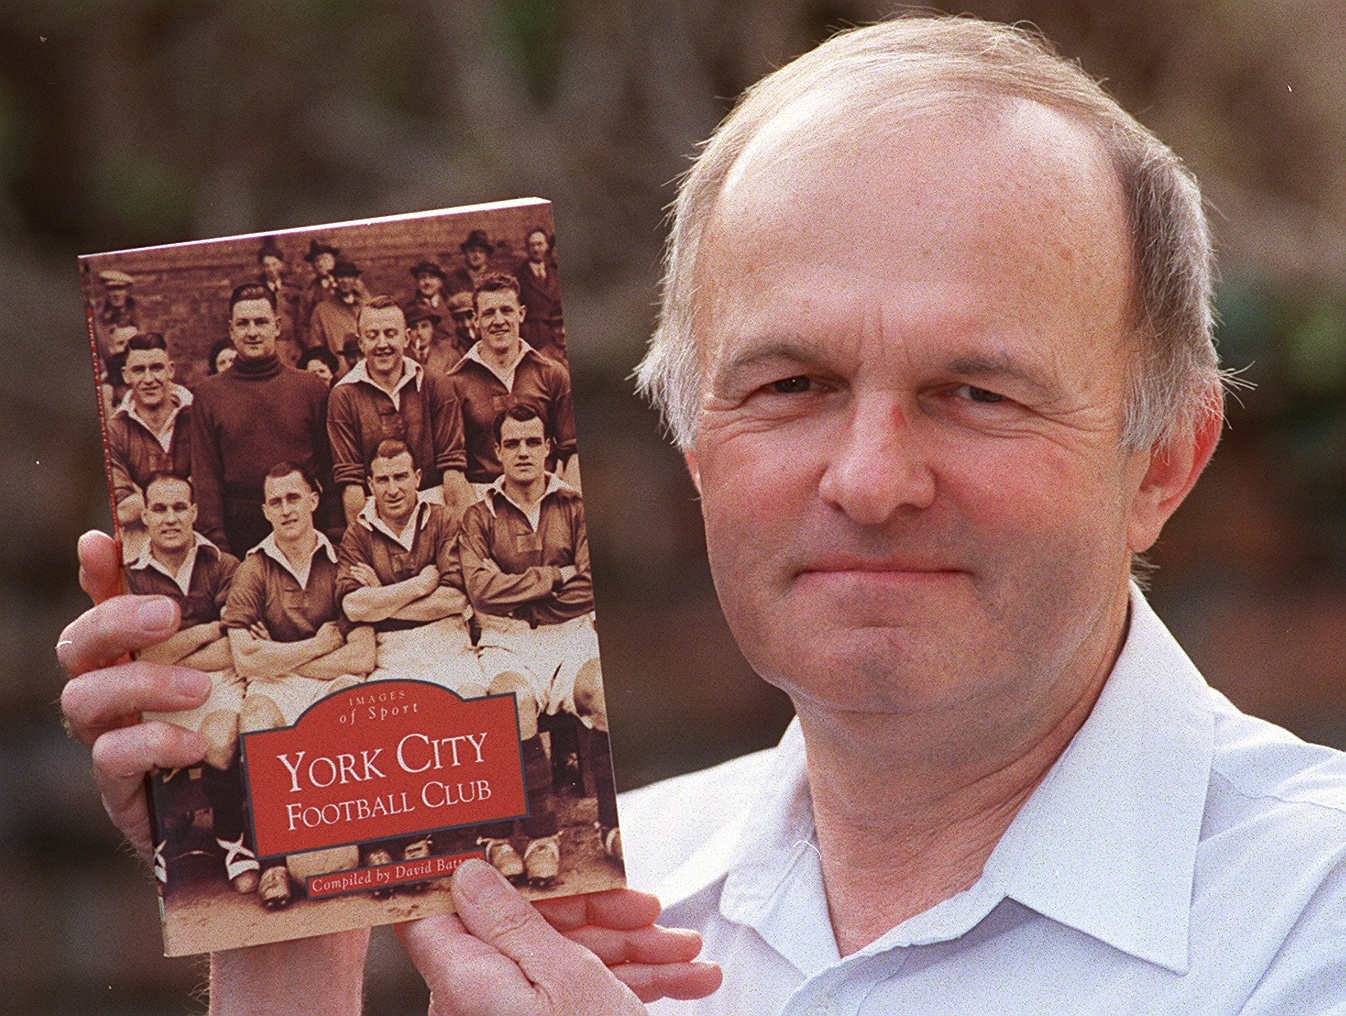 Tributes paid to York City club historian David Batters